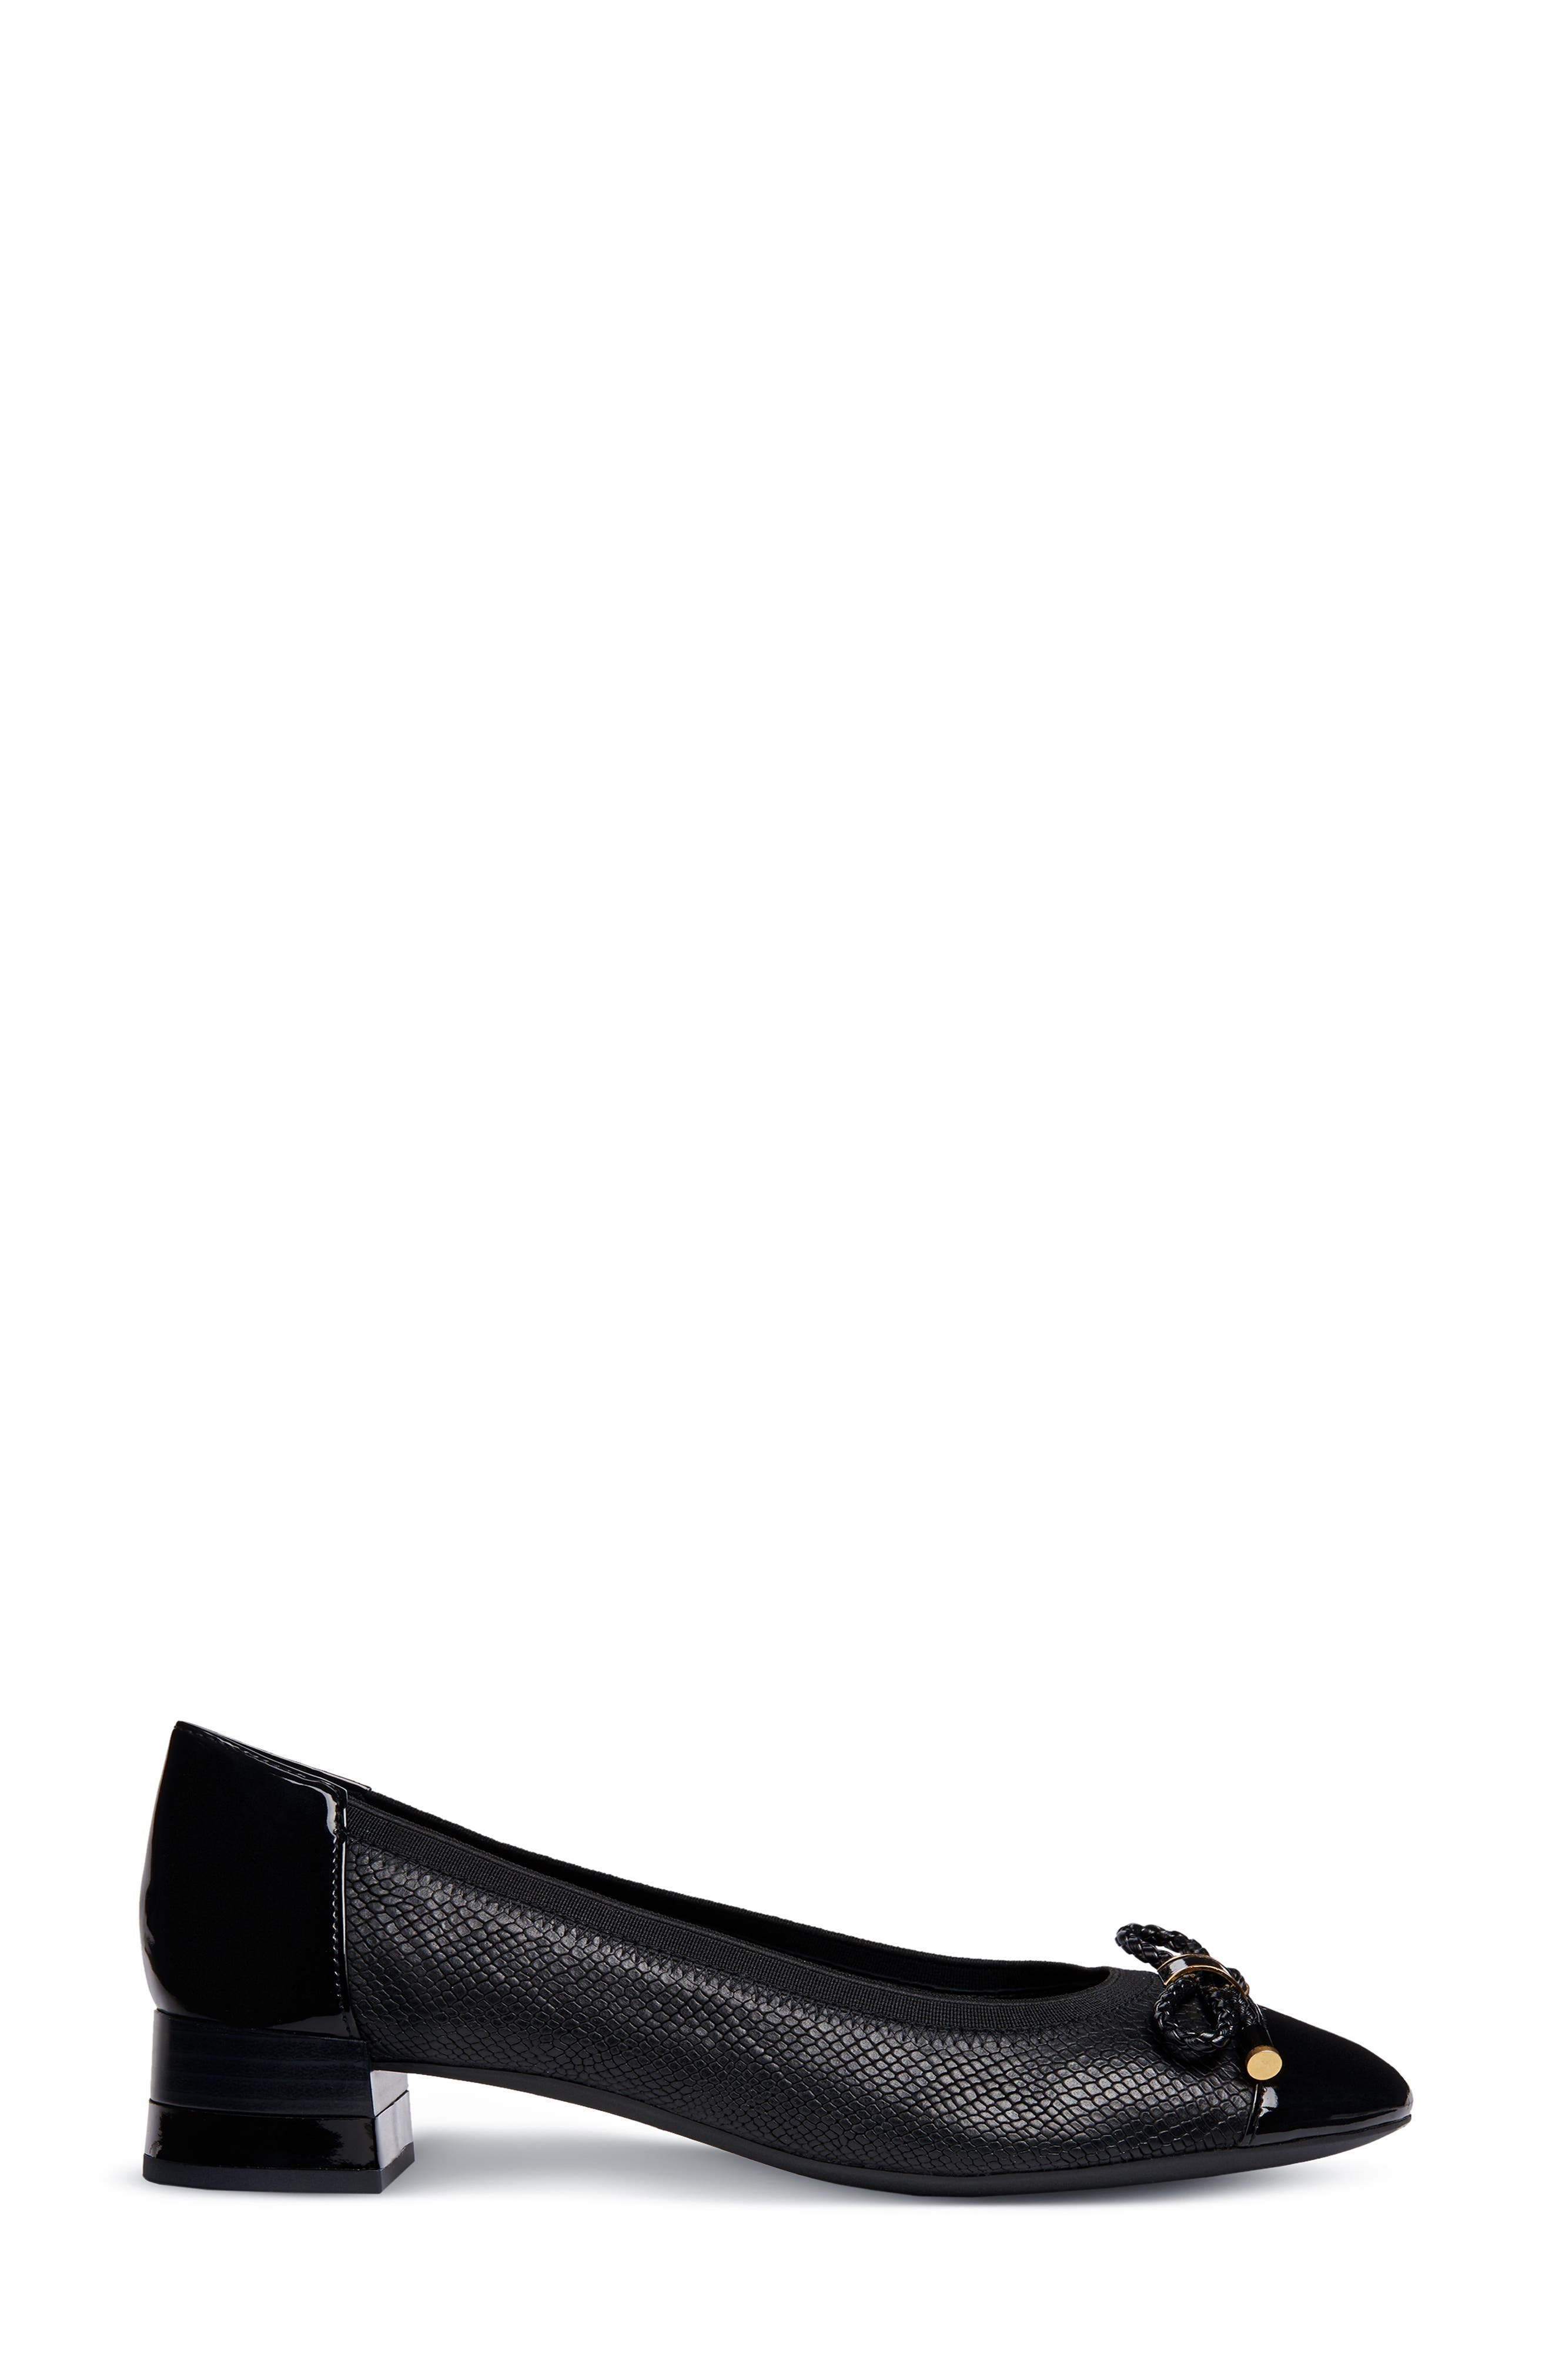 Chloo Pump,                             Alternate thumbnail 3, color,                             BLACK LEATHER